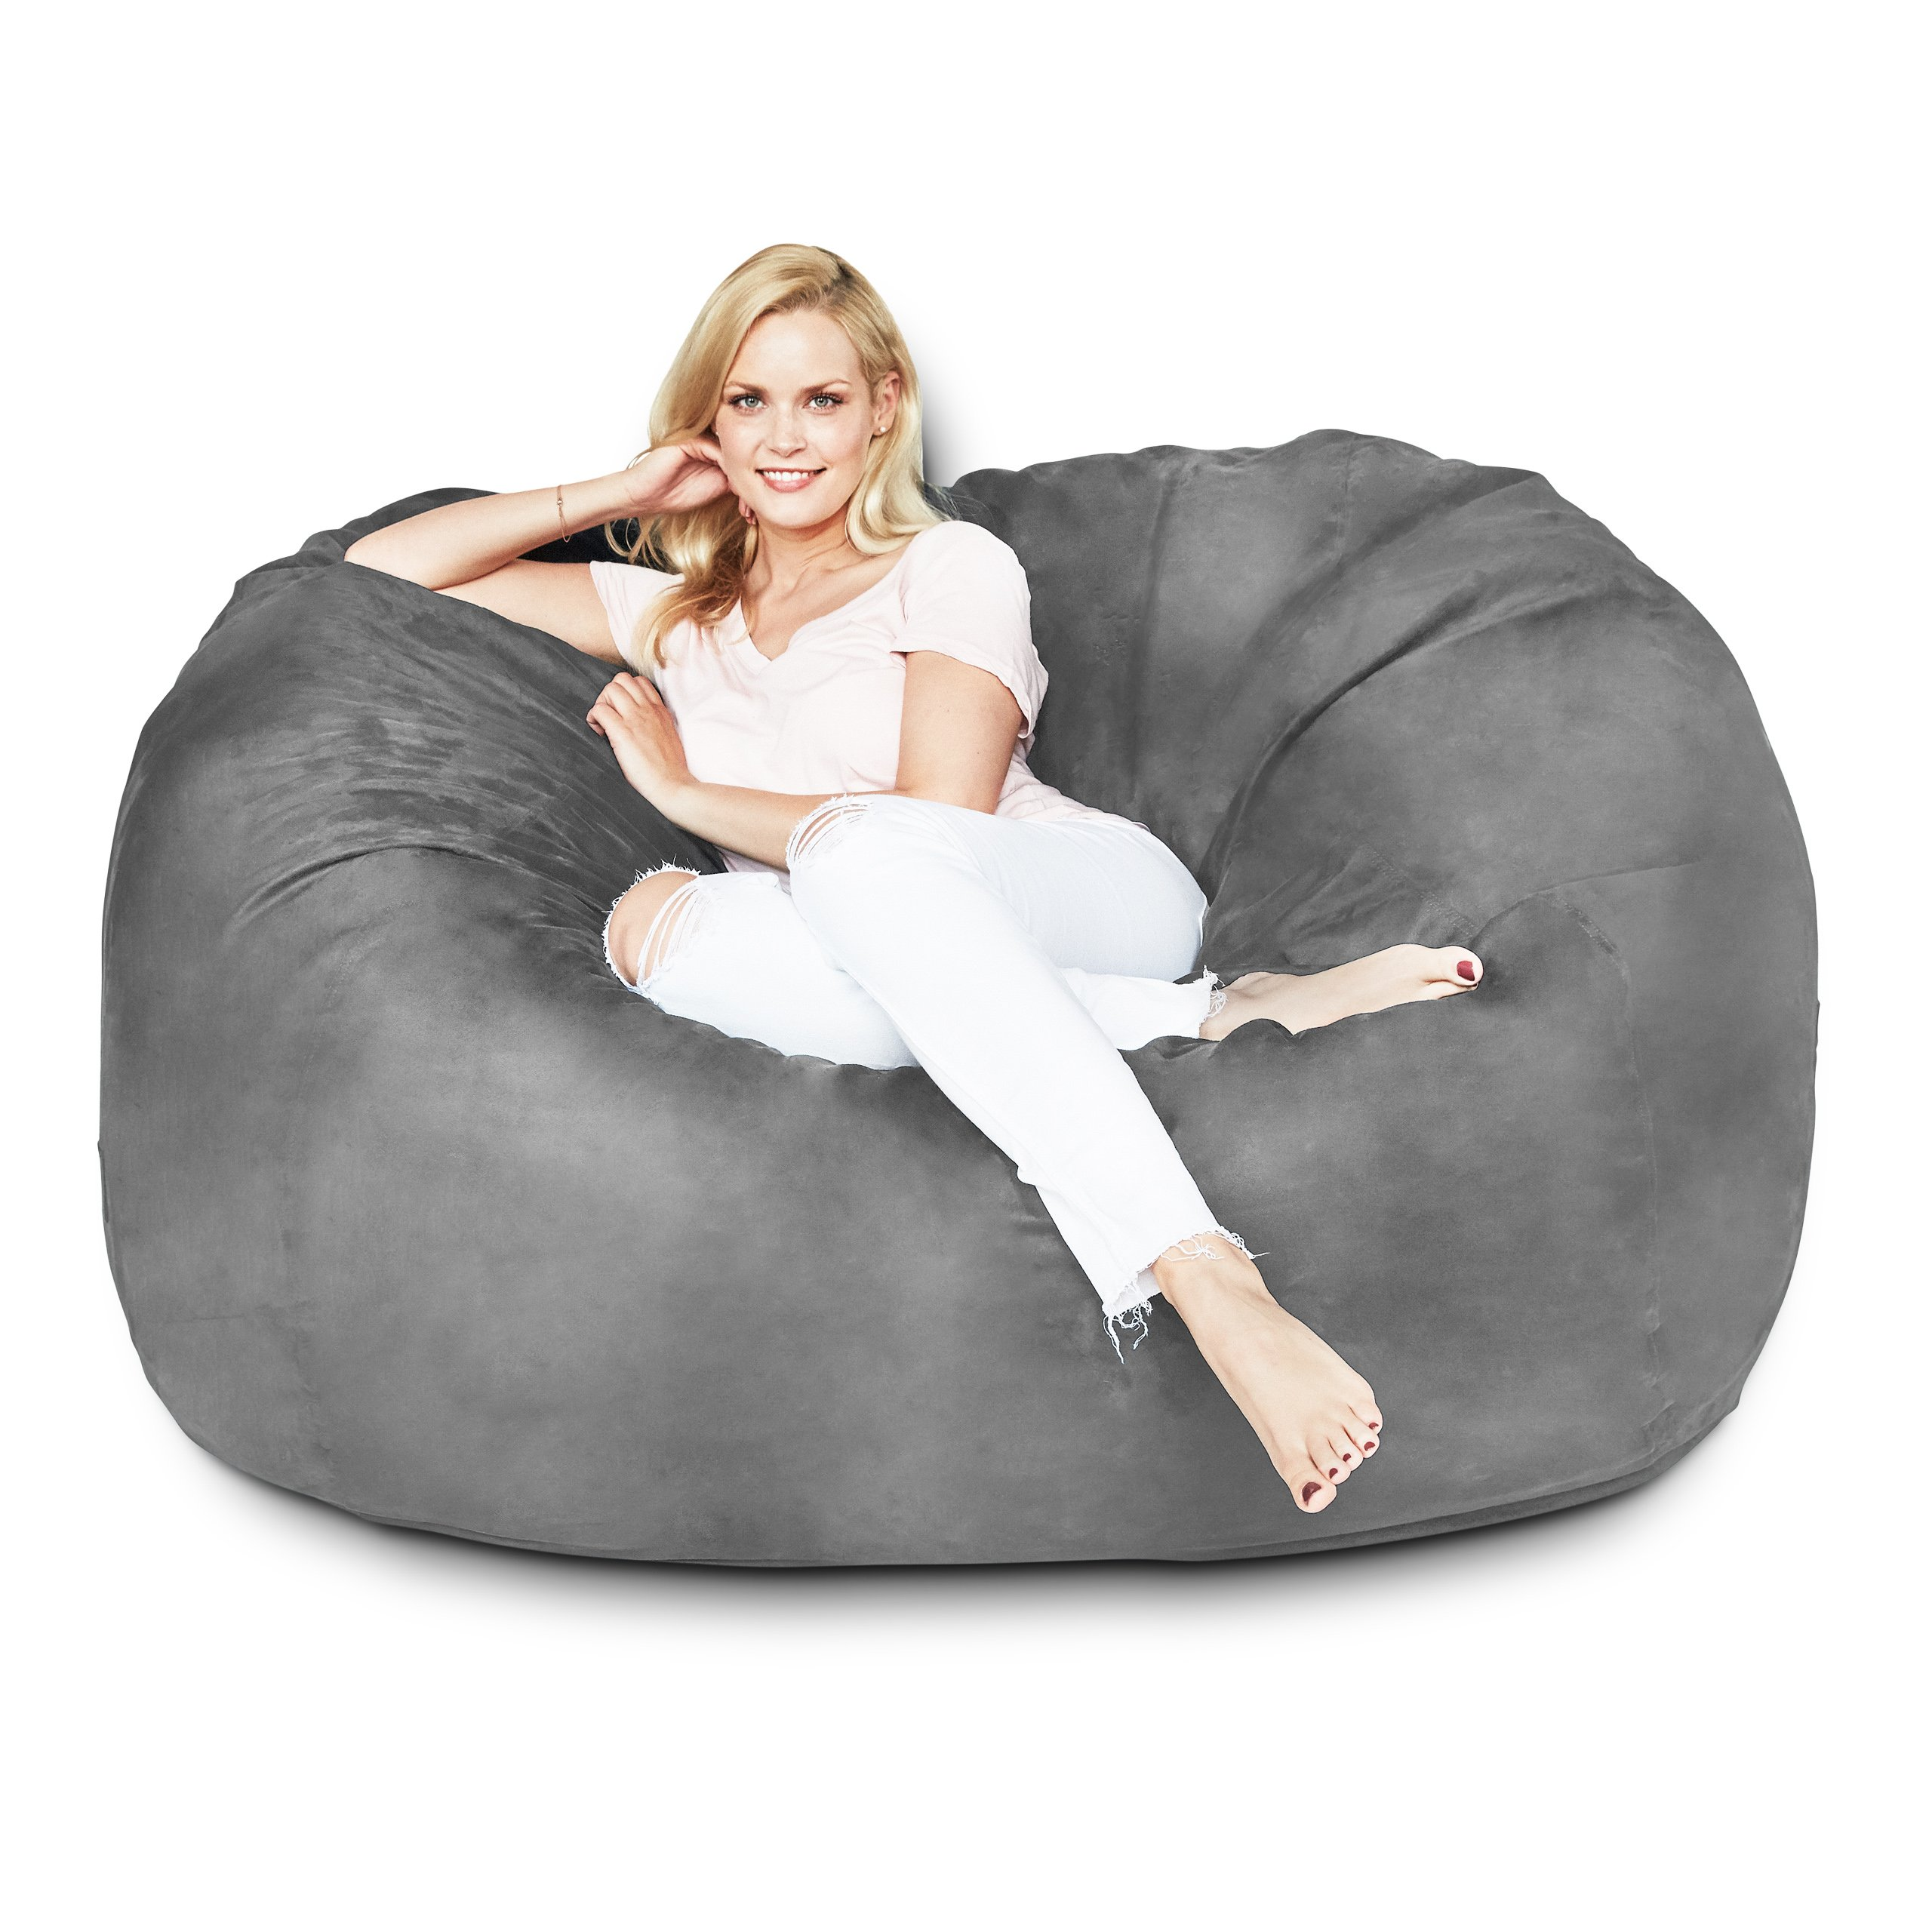 Lumaland Luxury 5-Foot Bean Bag Chair with Microsuede Cover Dark Grey, Machine Washable Big Size Sofa and Giant Lounger Furniture for Kids, Teens and Adults